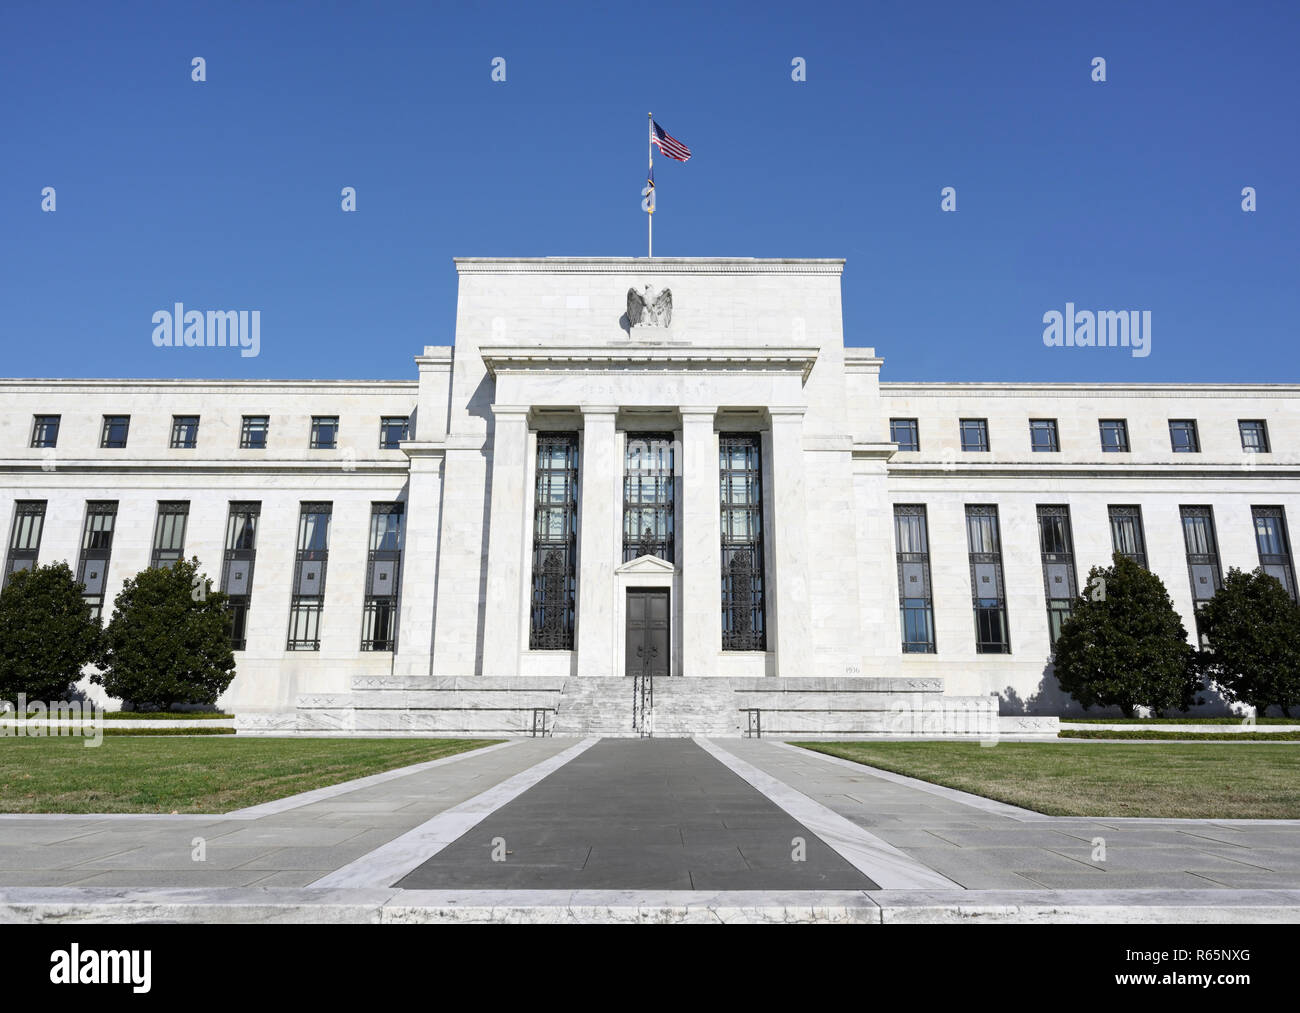 Federal Reserve Bank Building, Washington DC - Stock Image